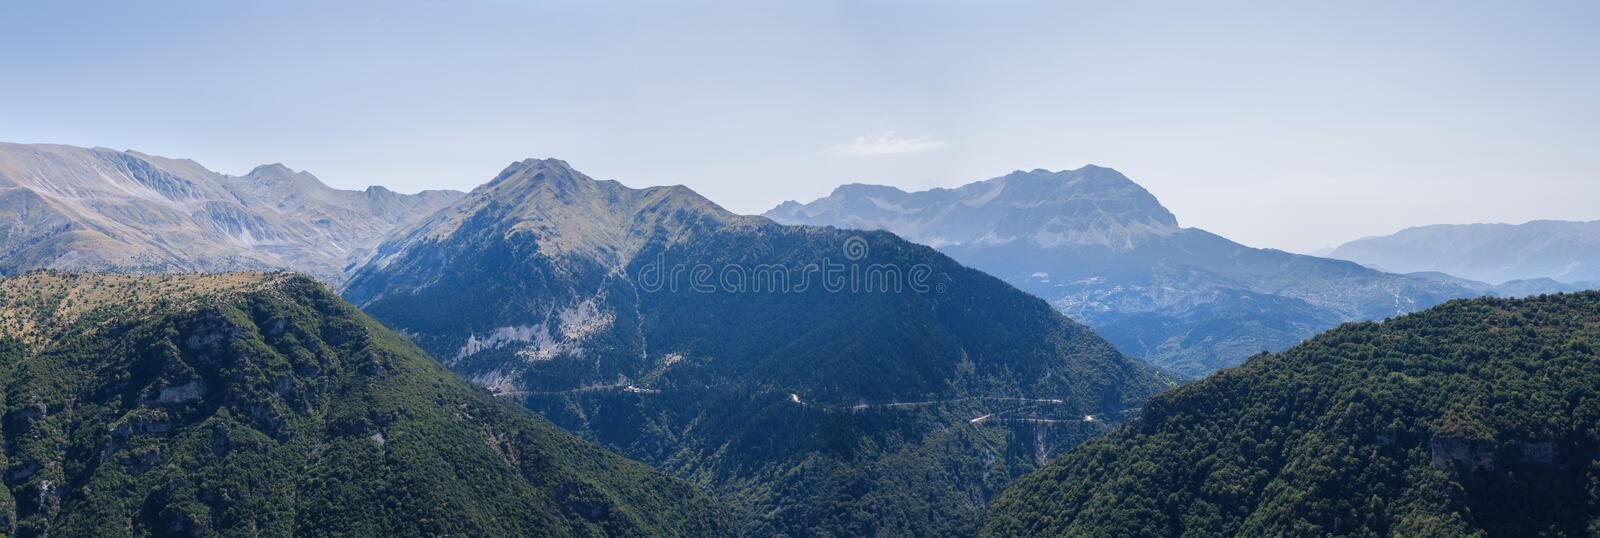 Banner of Panoramic view of mountain in National Park of Tzoumerka, Greece Epirus region. Mountain stock image